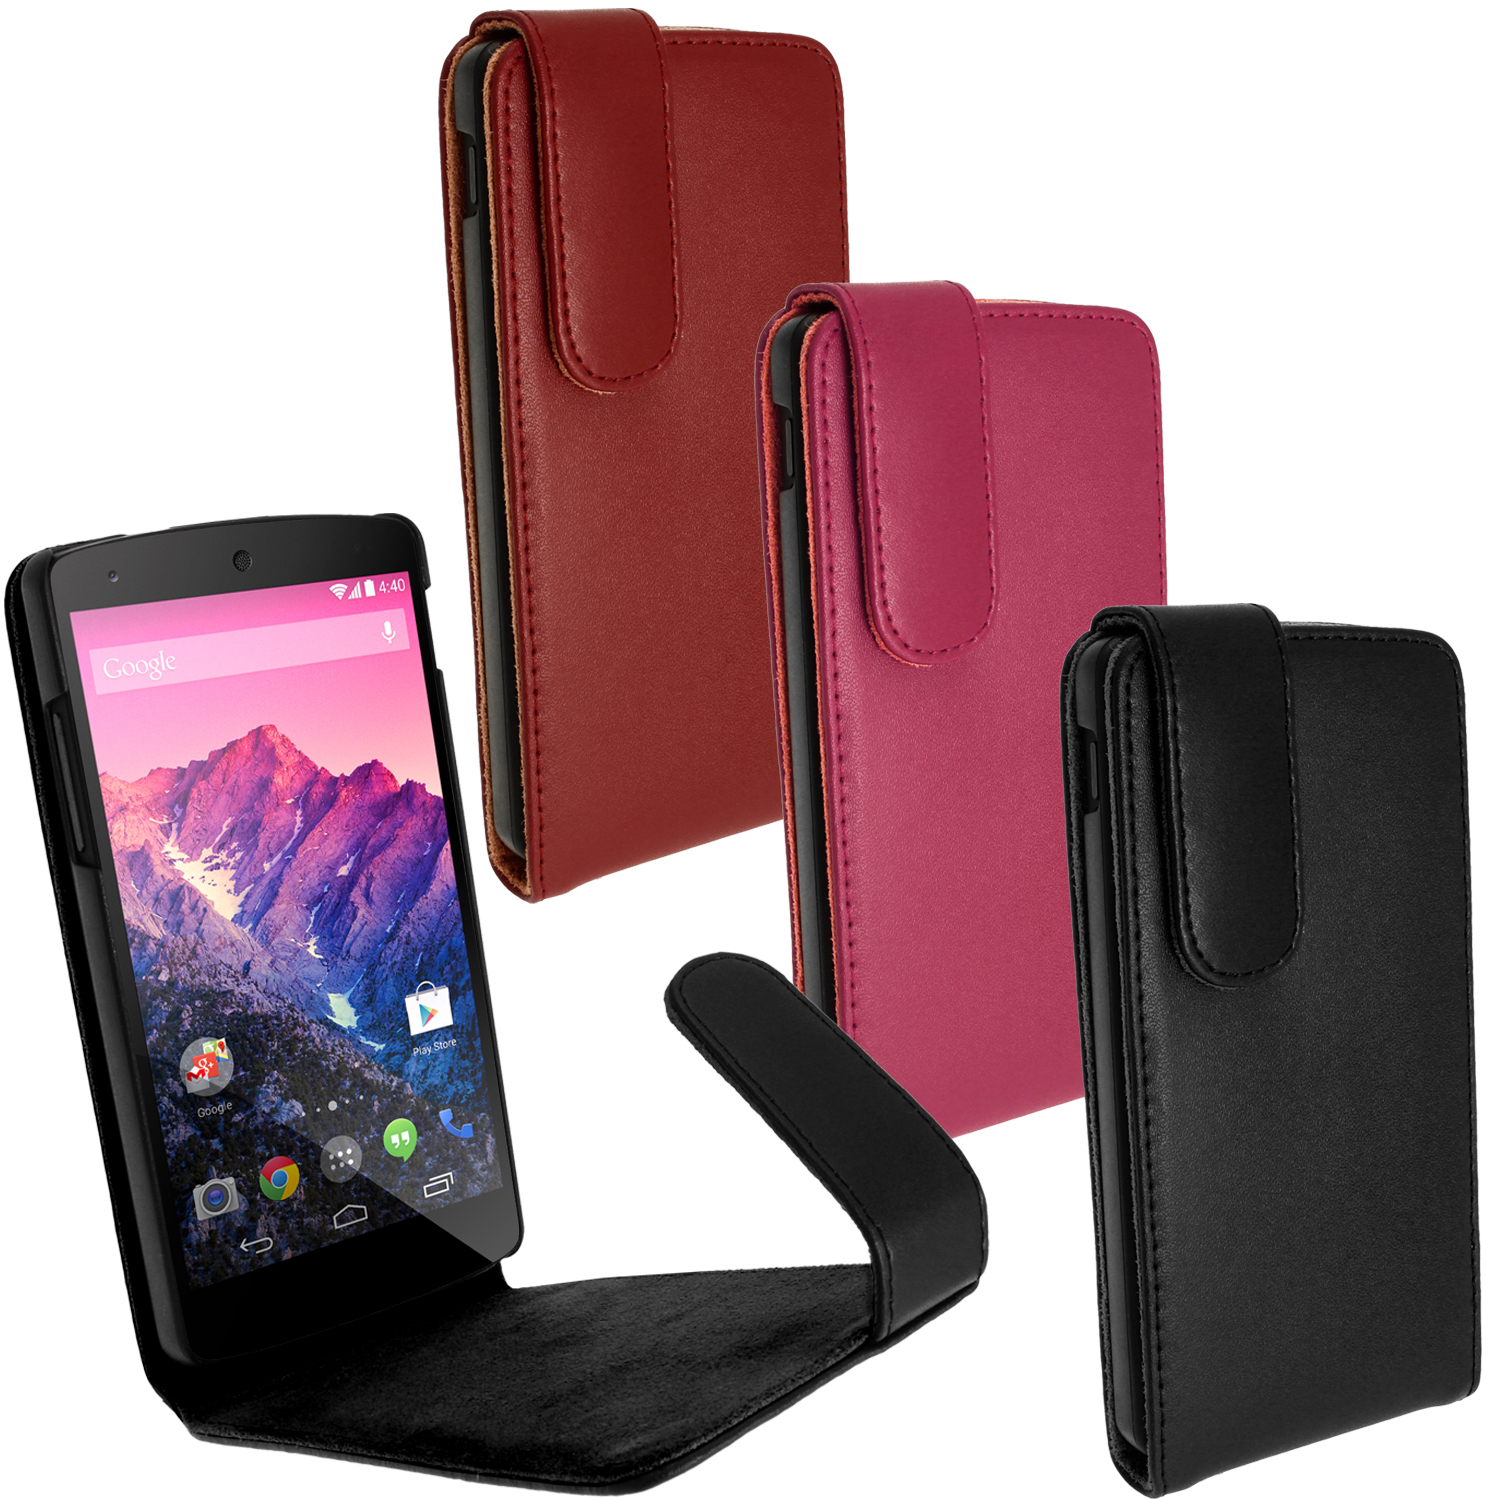 iGadgitz Leather Case for LG Google Nexus 5 Phone 16/32GB with Sleep/Wake Function + Screen Protector (various colours)